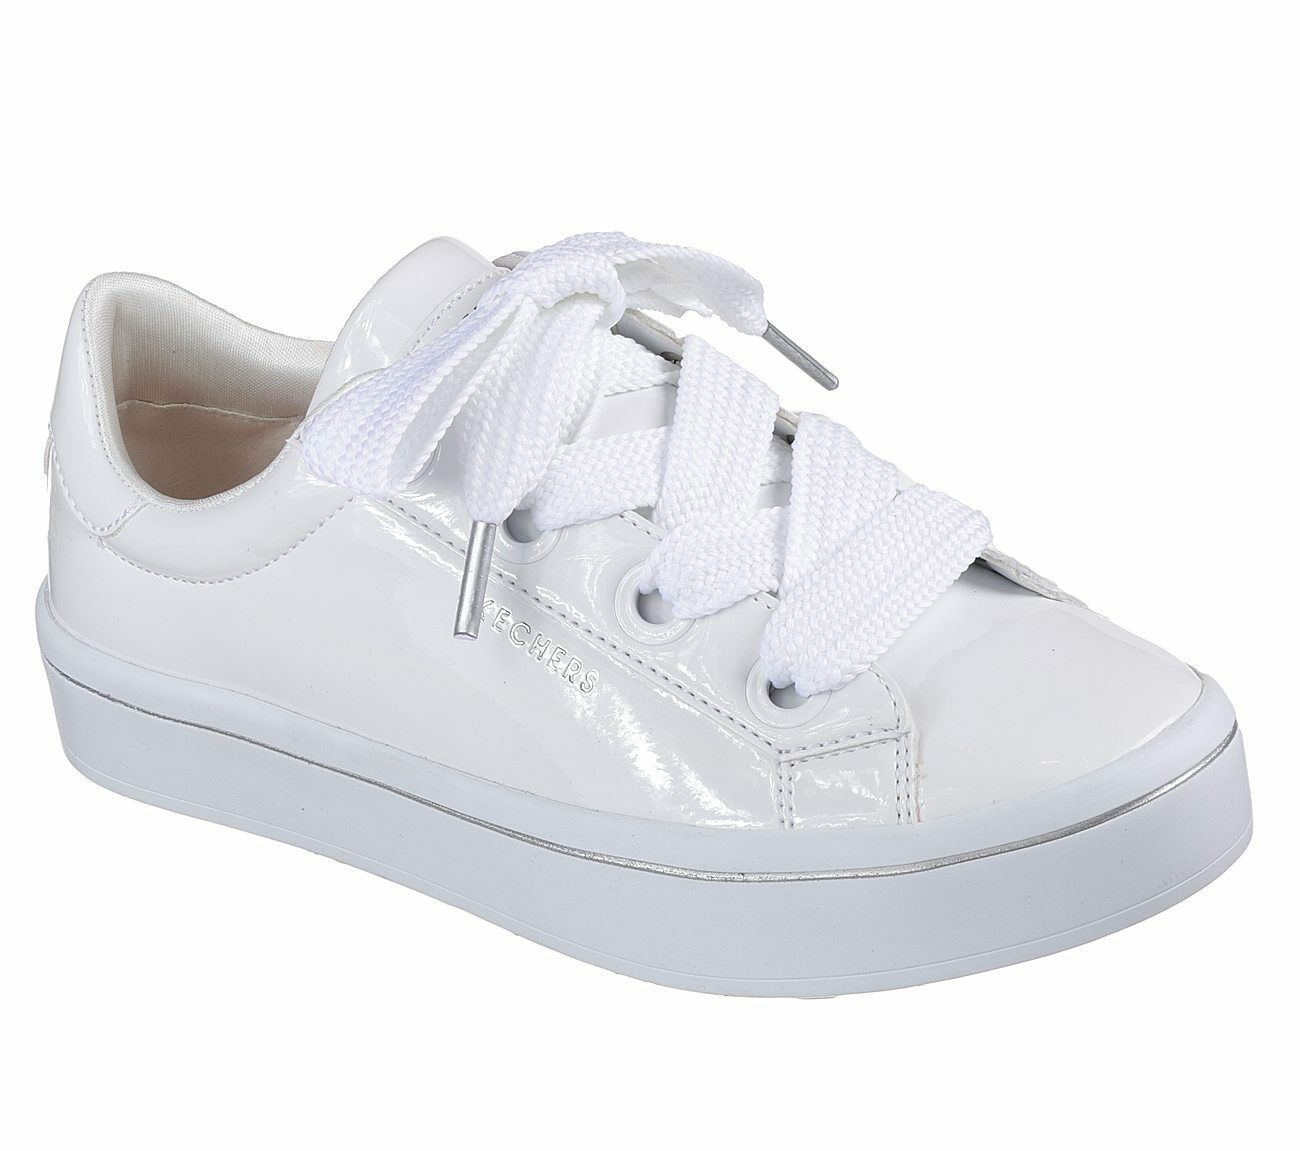 Skechers Hi-Lites - Slick Shoes Sneaker